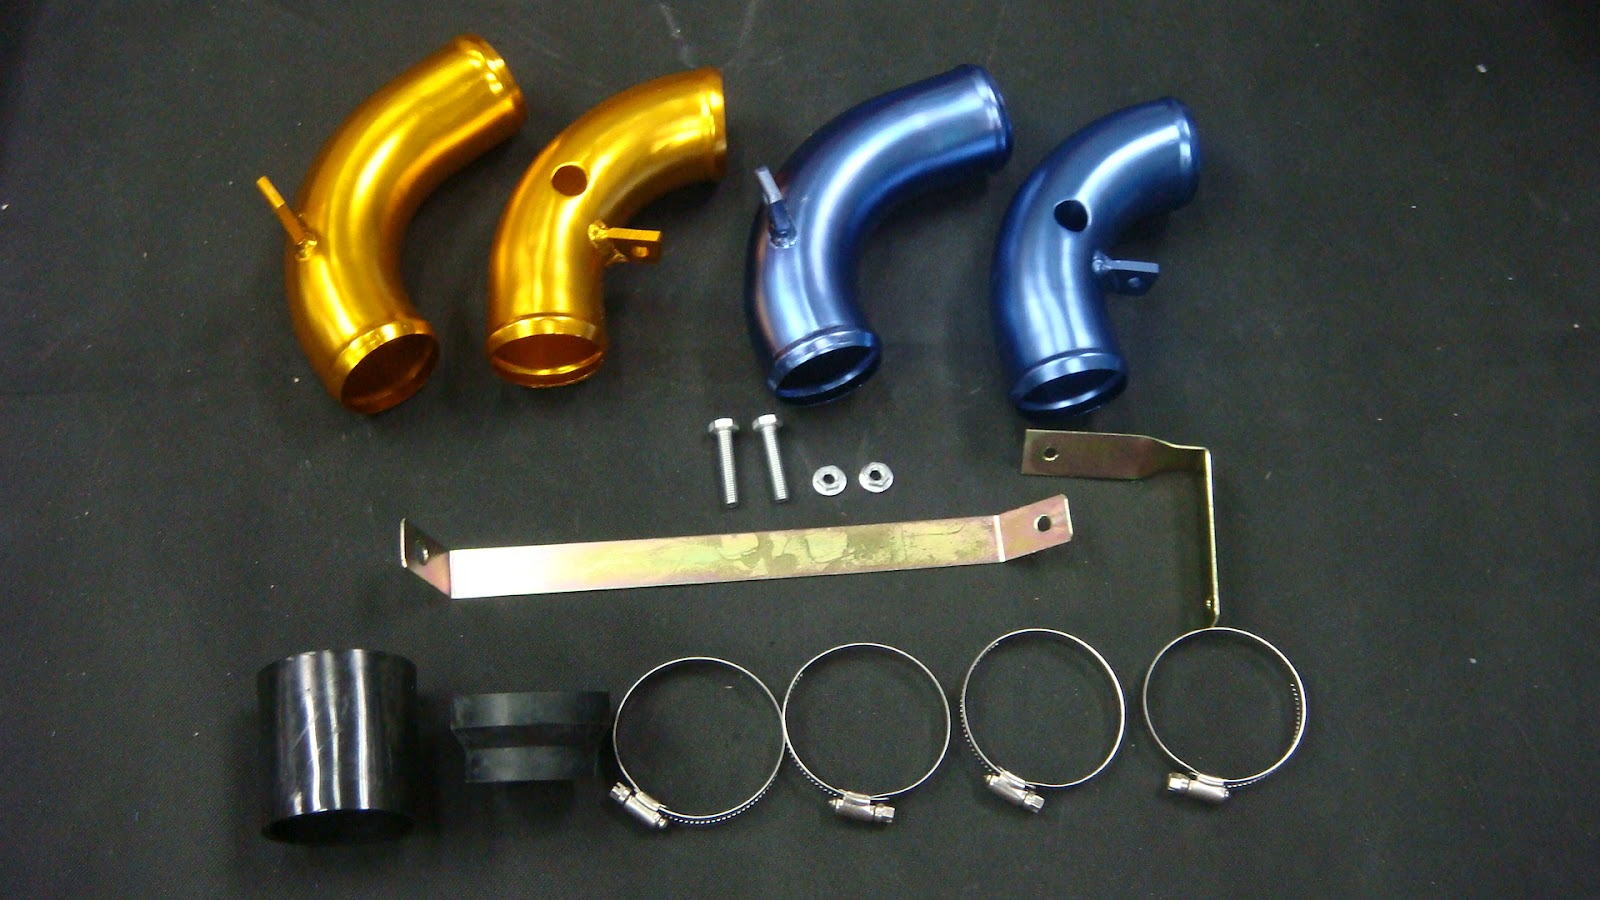 Myvi ram pipe yz series blue/gold